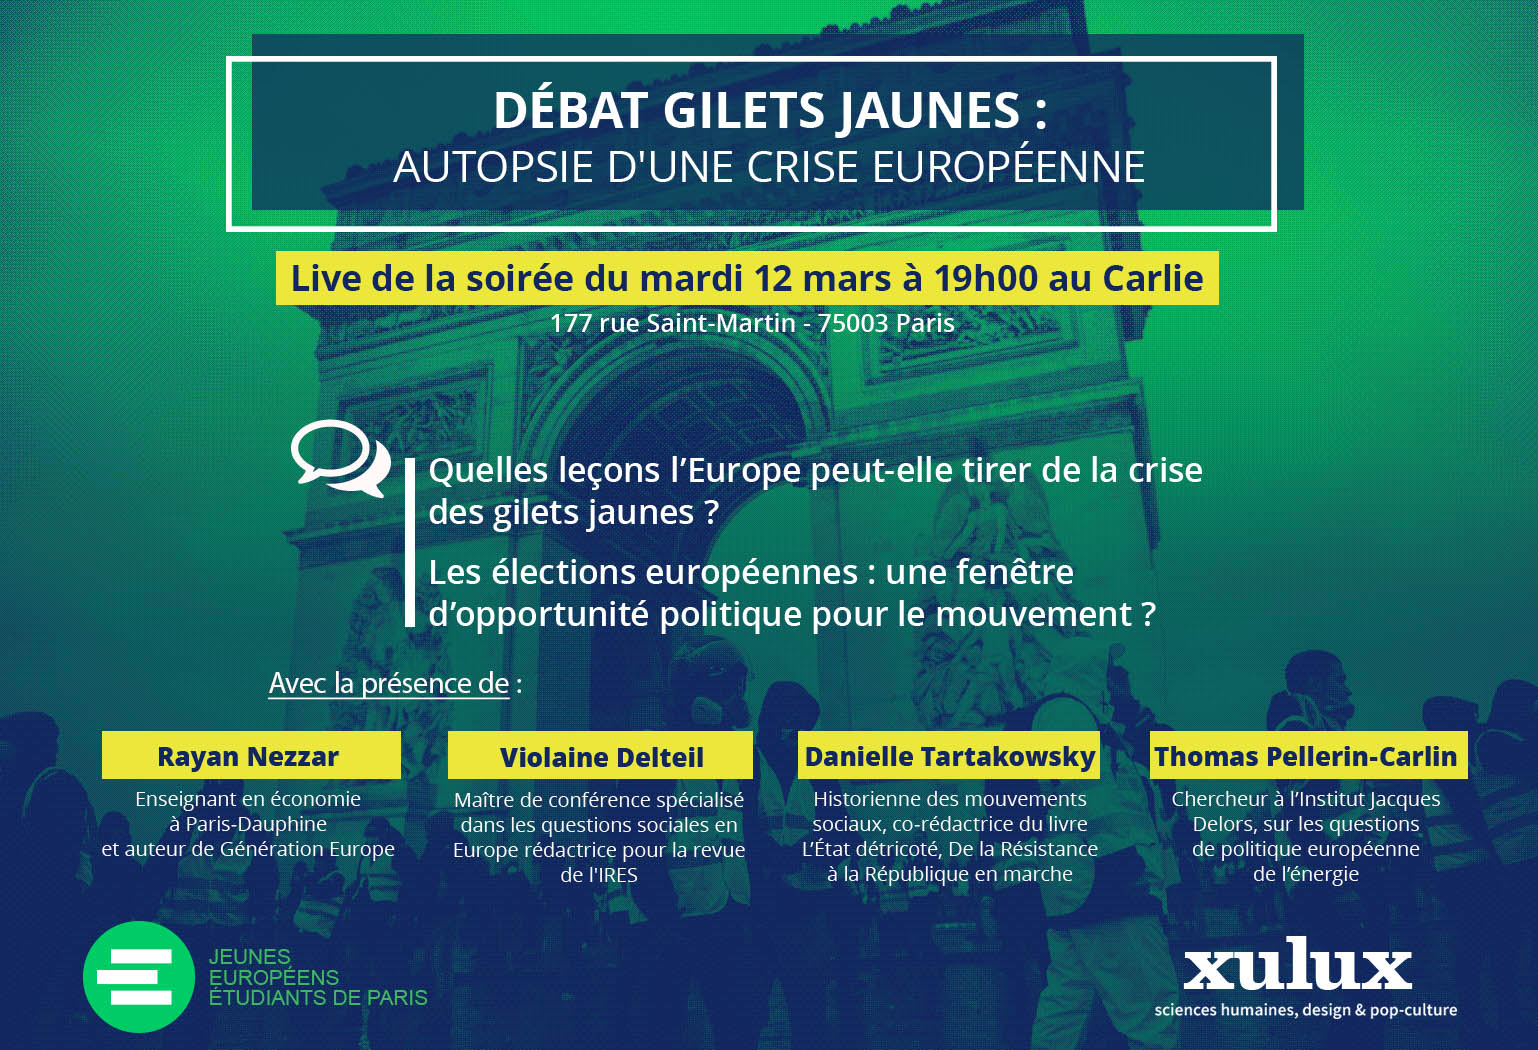 Quelles influences des Gilets Jaunes en Europe ? - groupe de gilets jaunes en france